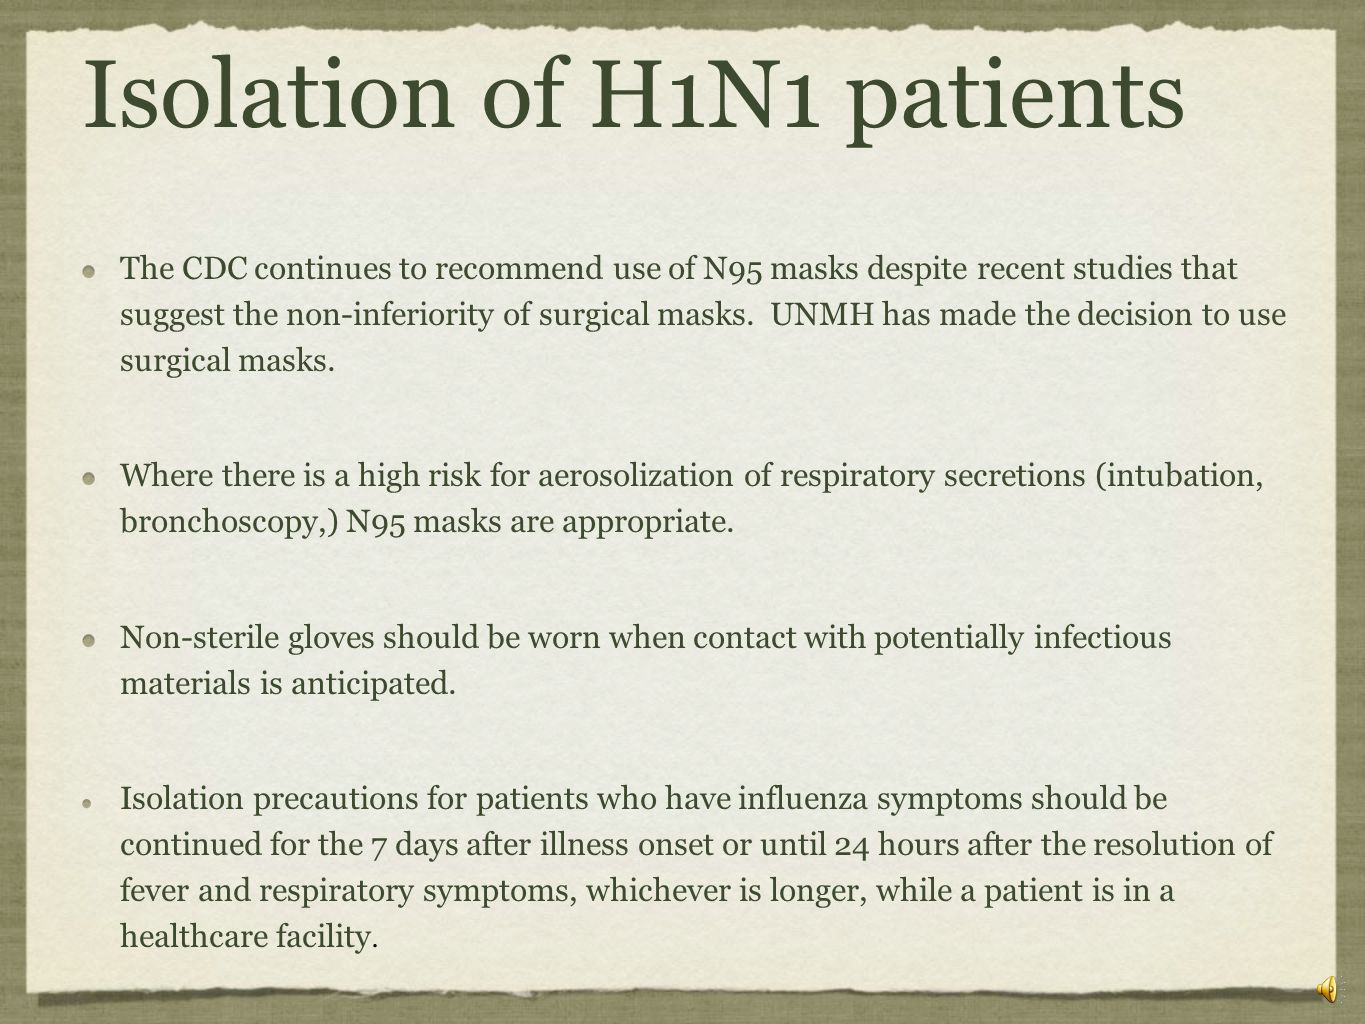 Isolation of H1N1 patients